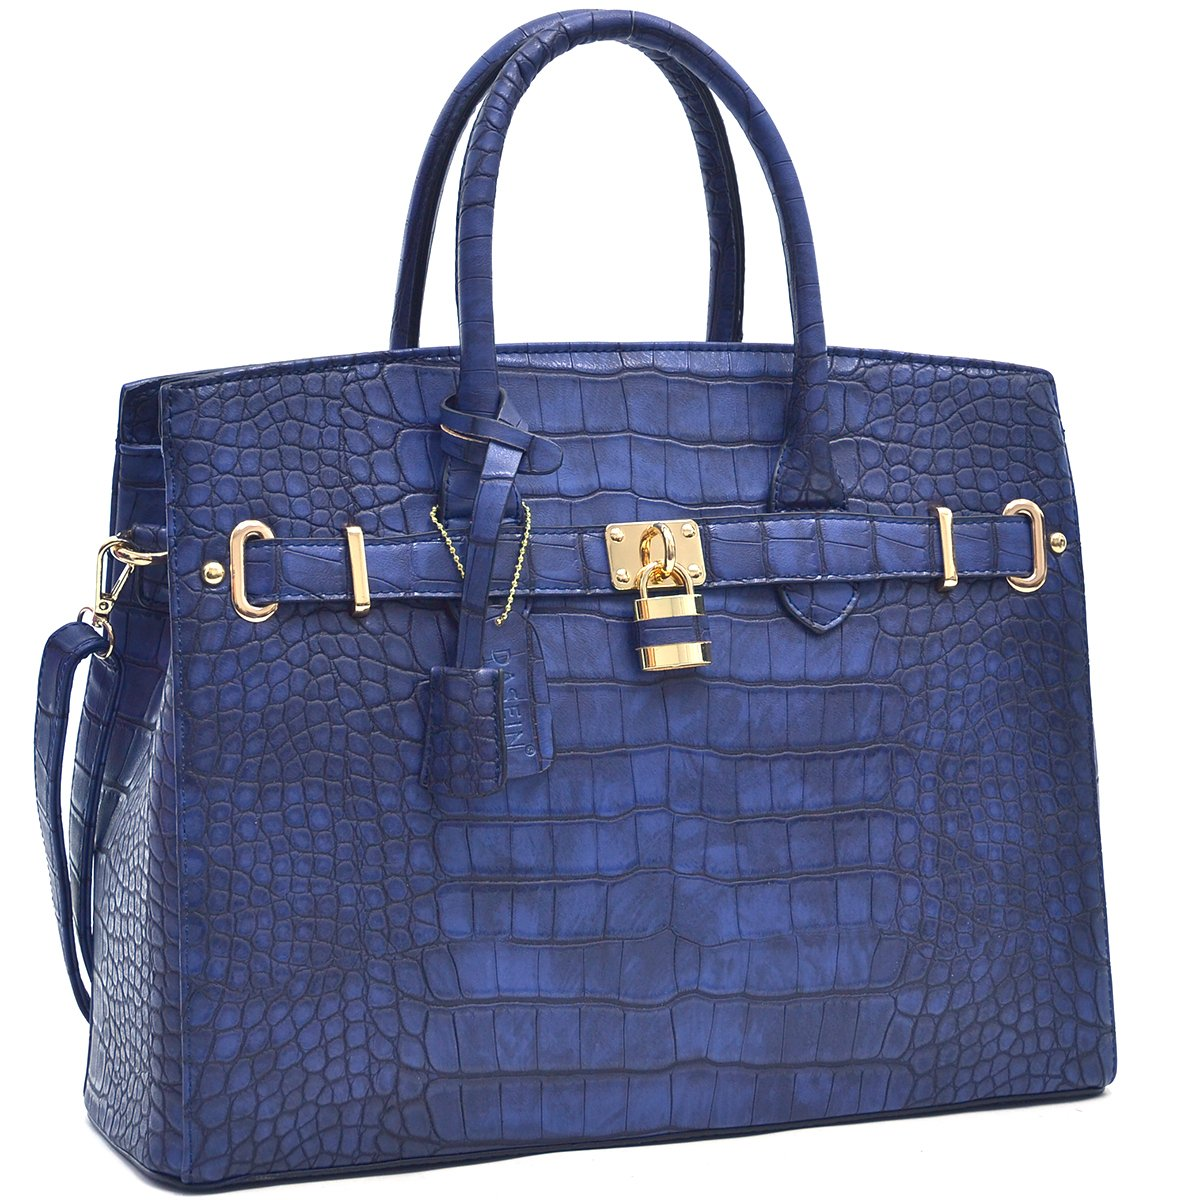 MMK Collection Fall~Winter Women Handbag Fashion Satchel for Women (02-1006)~Croco Padlock Handbag~Designer Women Purse/Handbag~Gifts for Women (02-1006 Royal Blue)